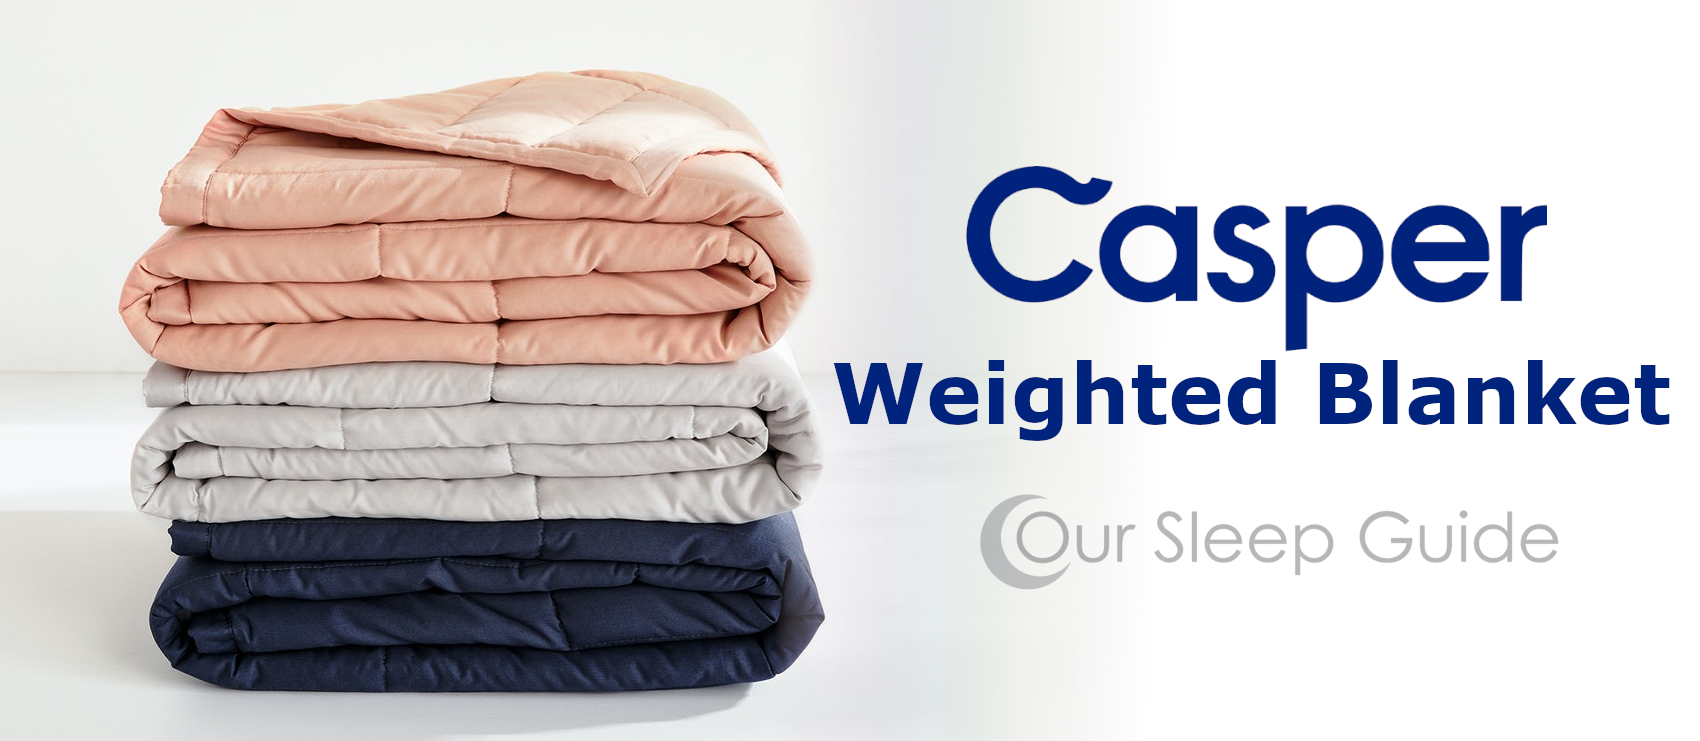 casper weighted blanket review